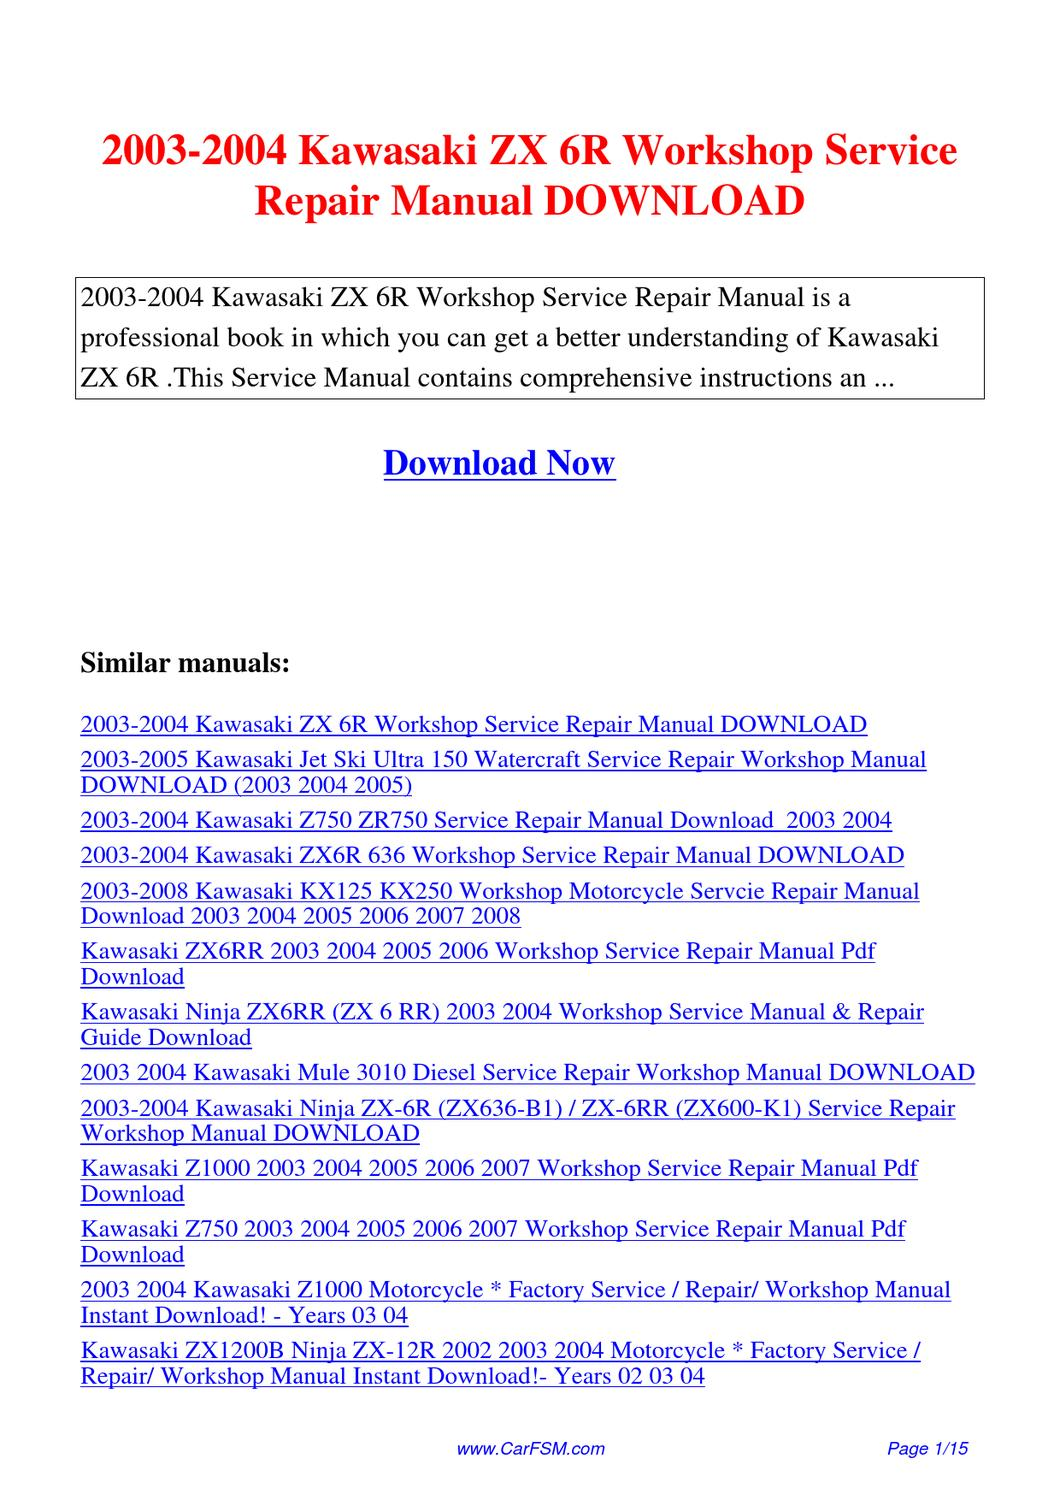 2005 Kawasaki Zx6r Service Manual Today Guide Trends Sample 2004 Ninja 636 Engine Diagram 2003 Zx 6r Workshop Repair By Owners